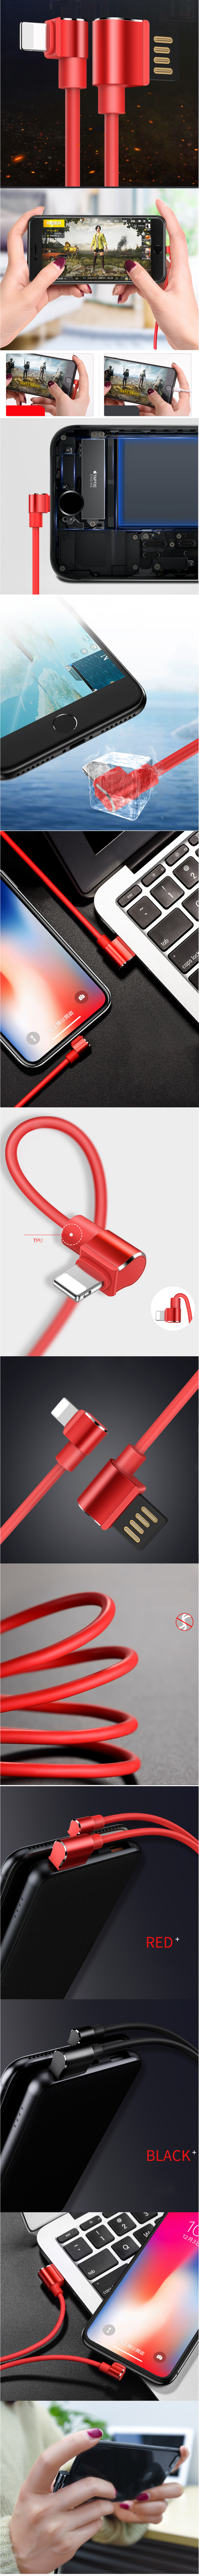 Haoku U37 Usb Cable Charger For Iphone Android L Shape Design Fast Kabel 2 In 1 Charge Ampamp Data And 100cm Product Name Long Travel Charging Line Function Transmission Material Aluminum Alloy Elastic Tpe Wire Copper Core Length 12m